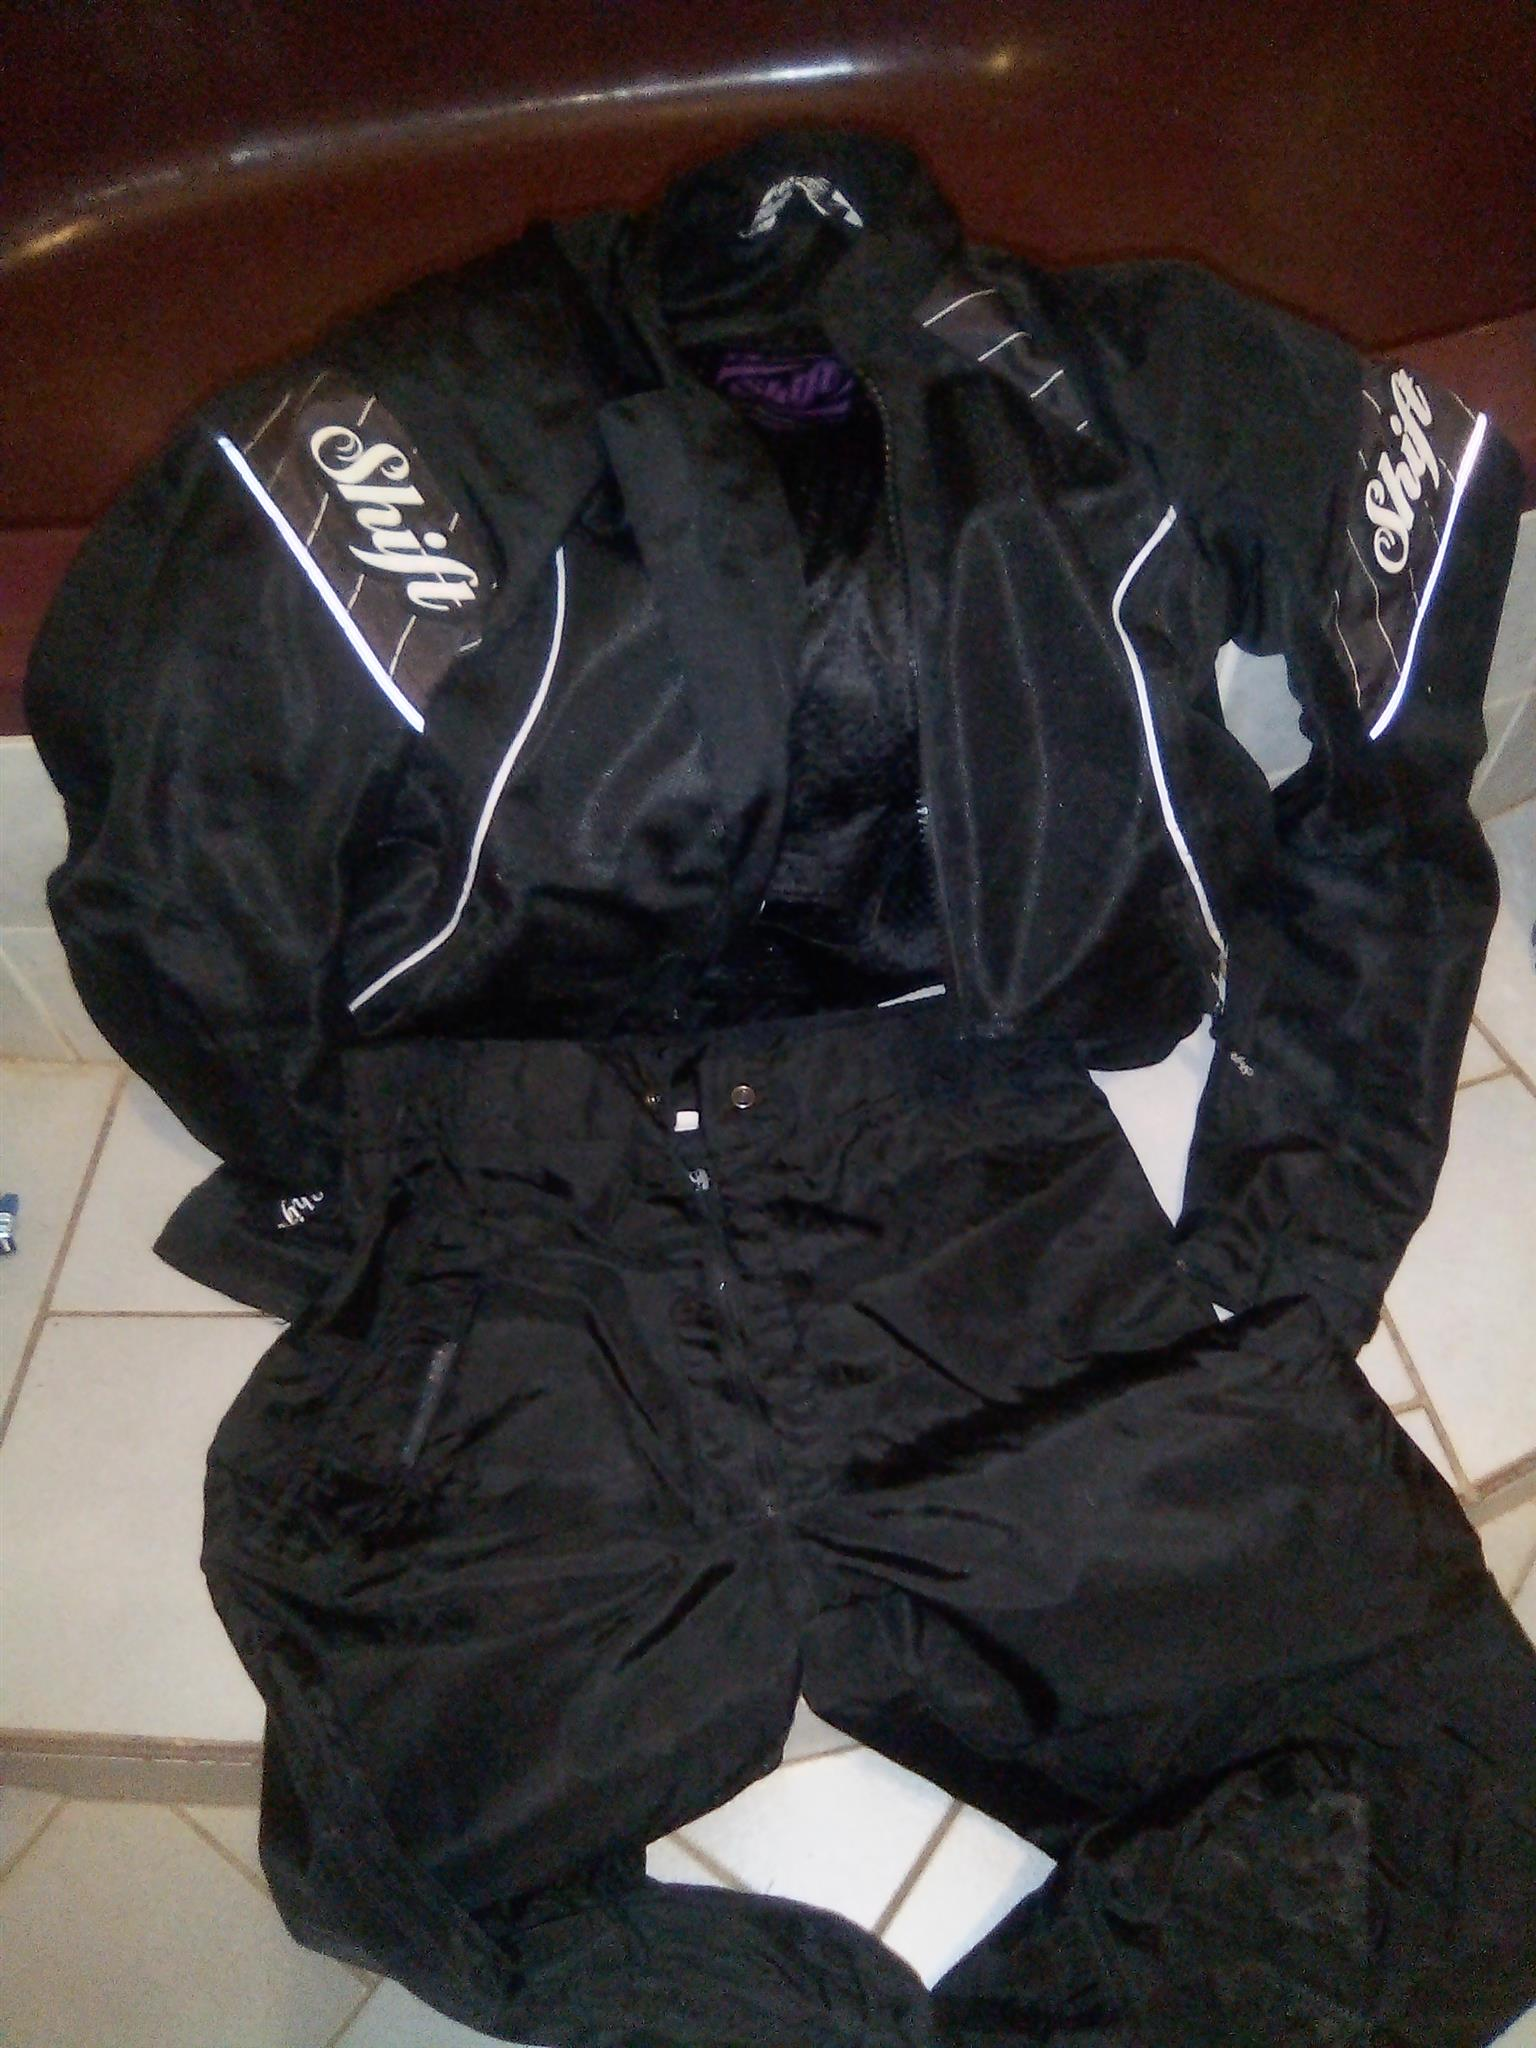 Bike jacket and pants and boots